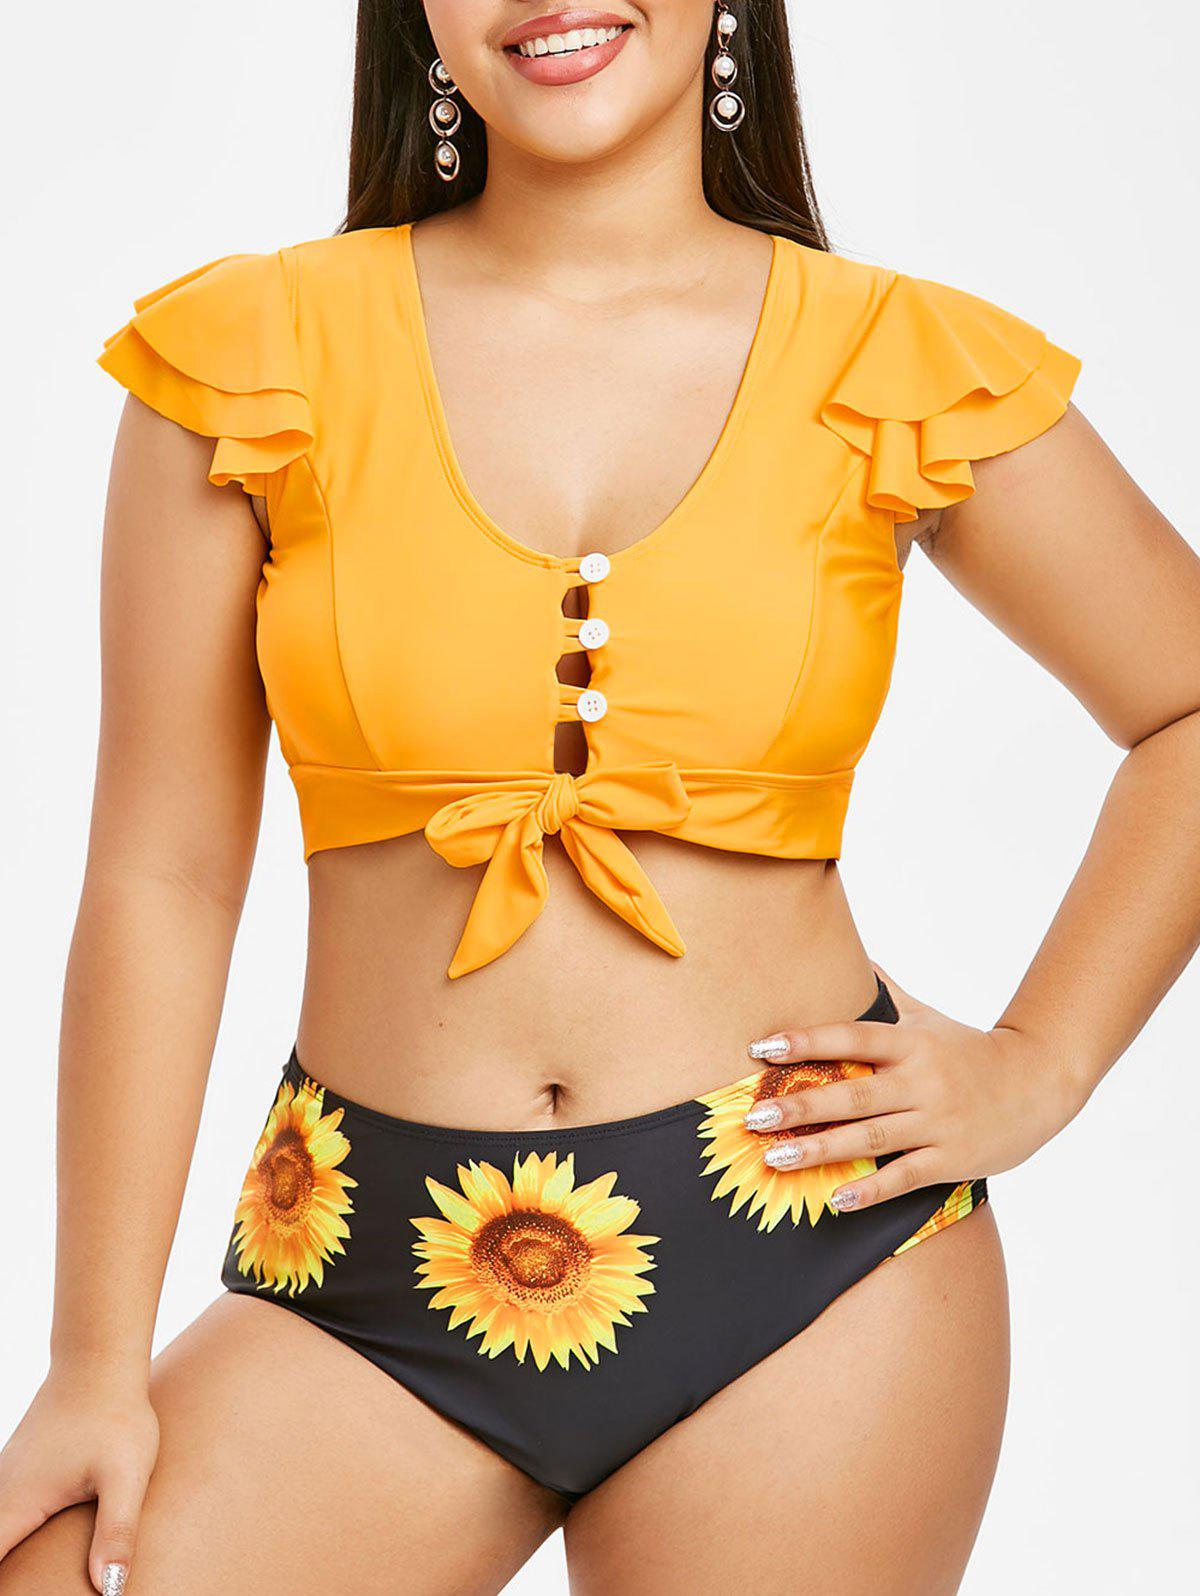 Button Loop Knotted Sunflower Plus Size Two Piece Swimwear - RUBBER DUCKY YELLOW 5X